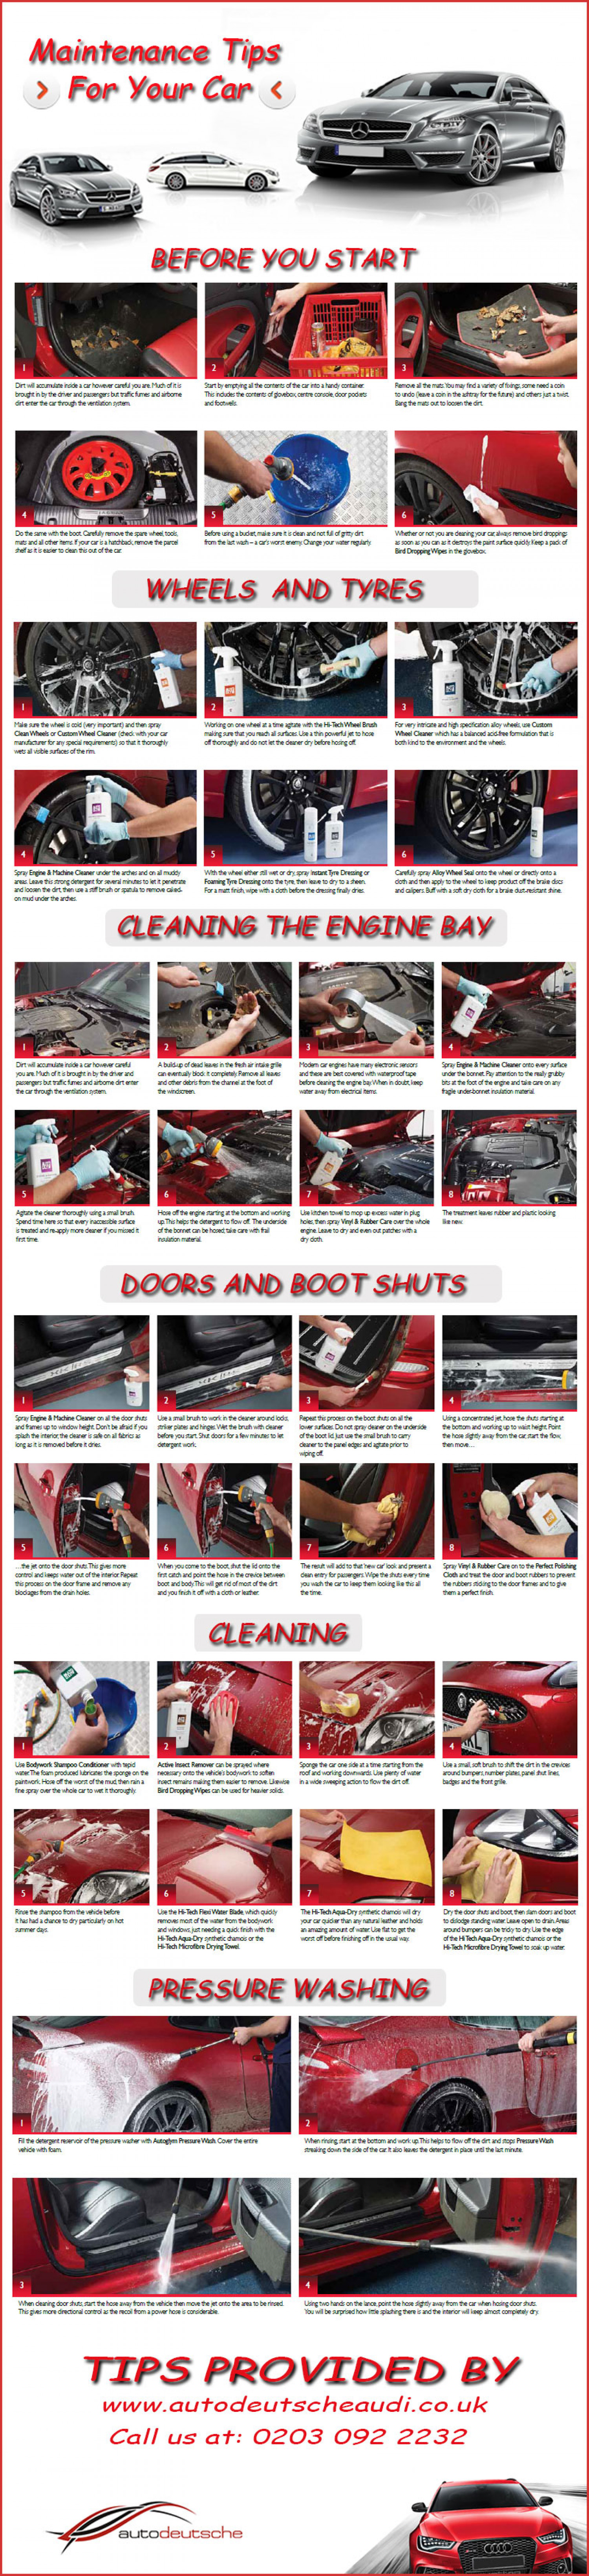 Maintenance Tips For Your Car Infographic